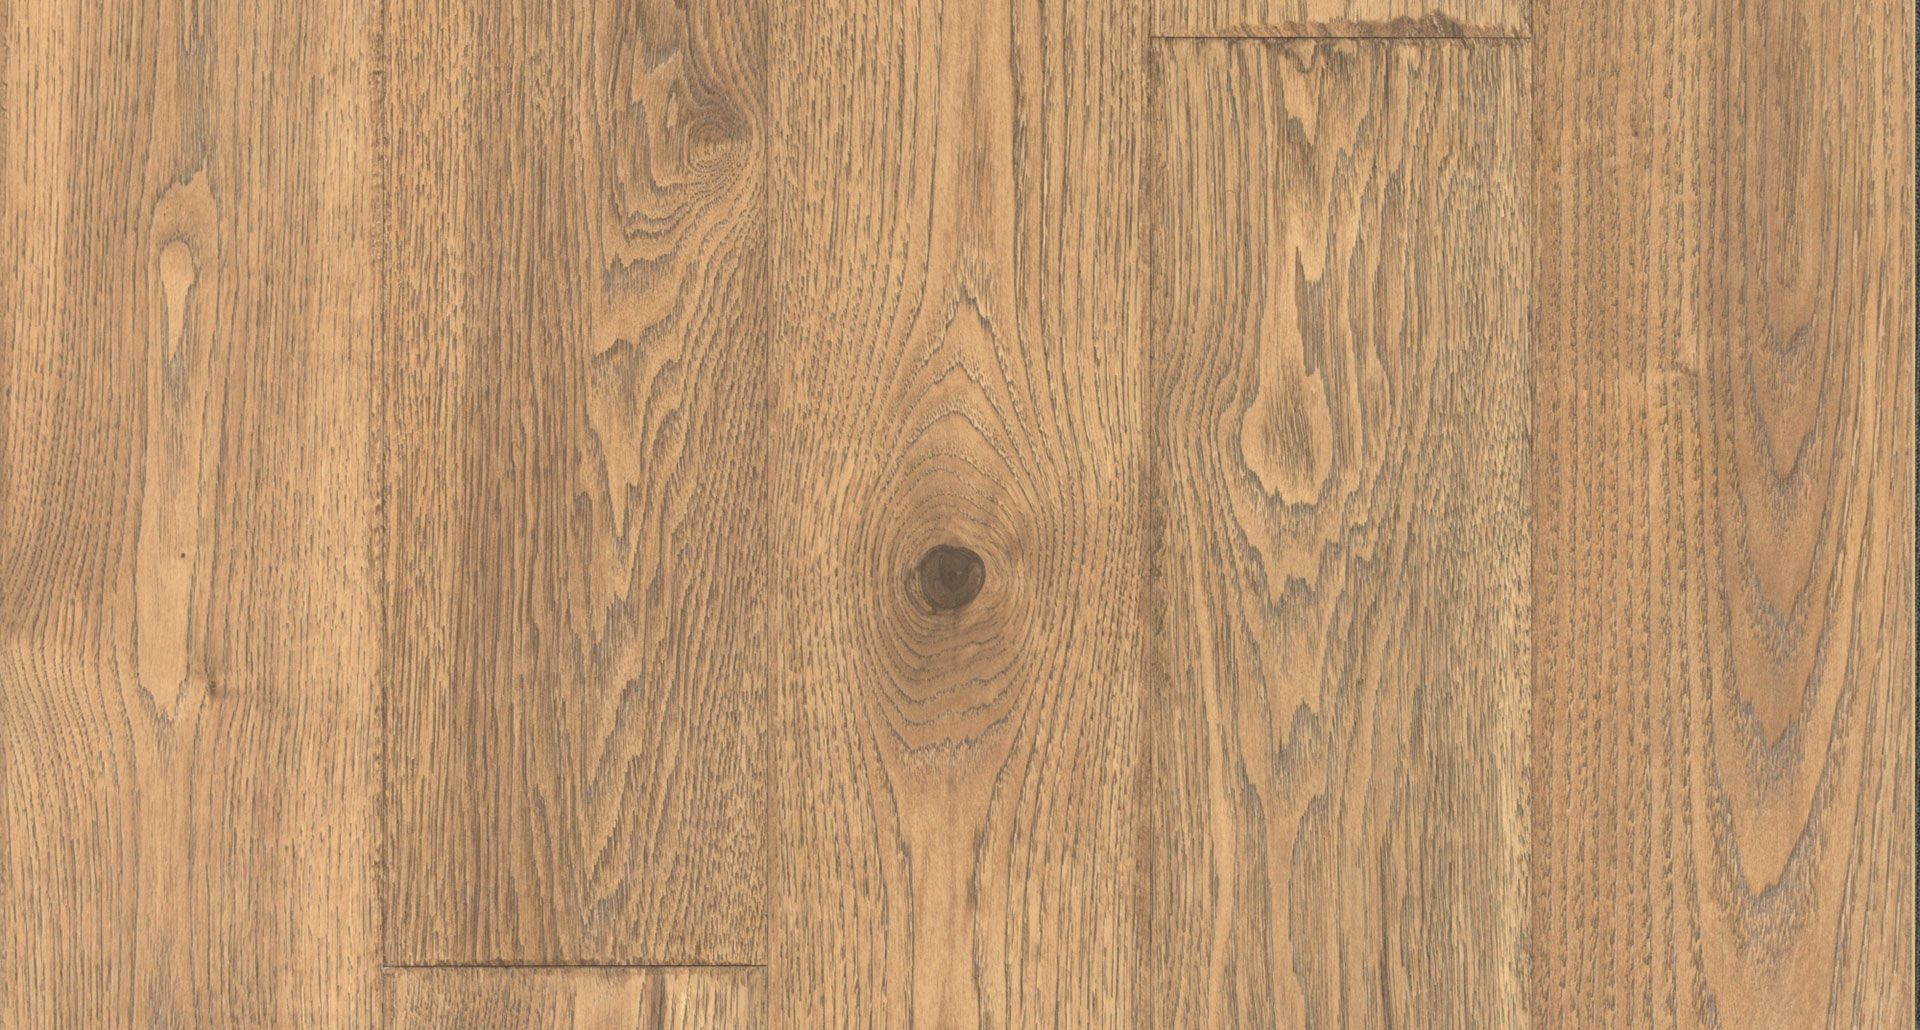 how to refinish painted hardwood floors of brier creek oak laminate floor natural wood look 12mm thick 1 inside brier creek oak laminate floor natural wood look 12mm thick 1 strip plank laminate flooring lifetime warranty